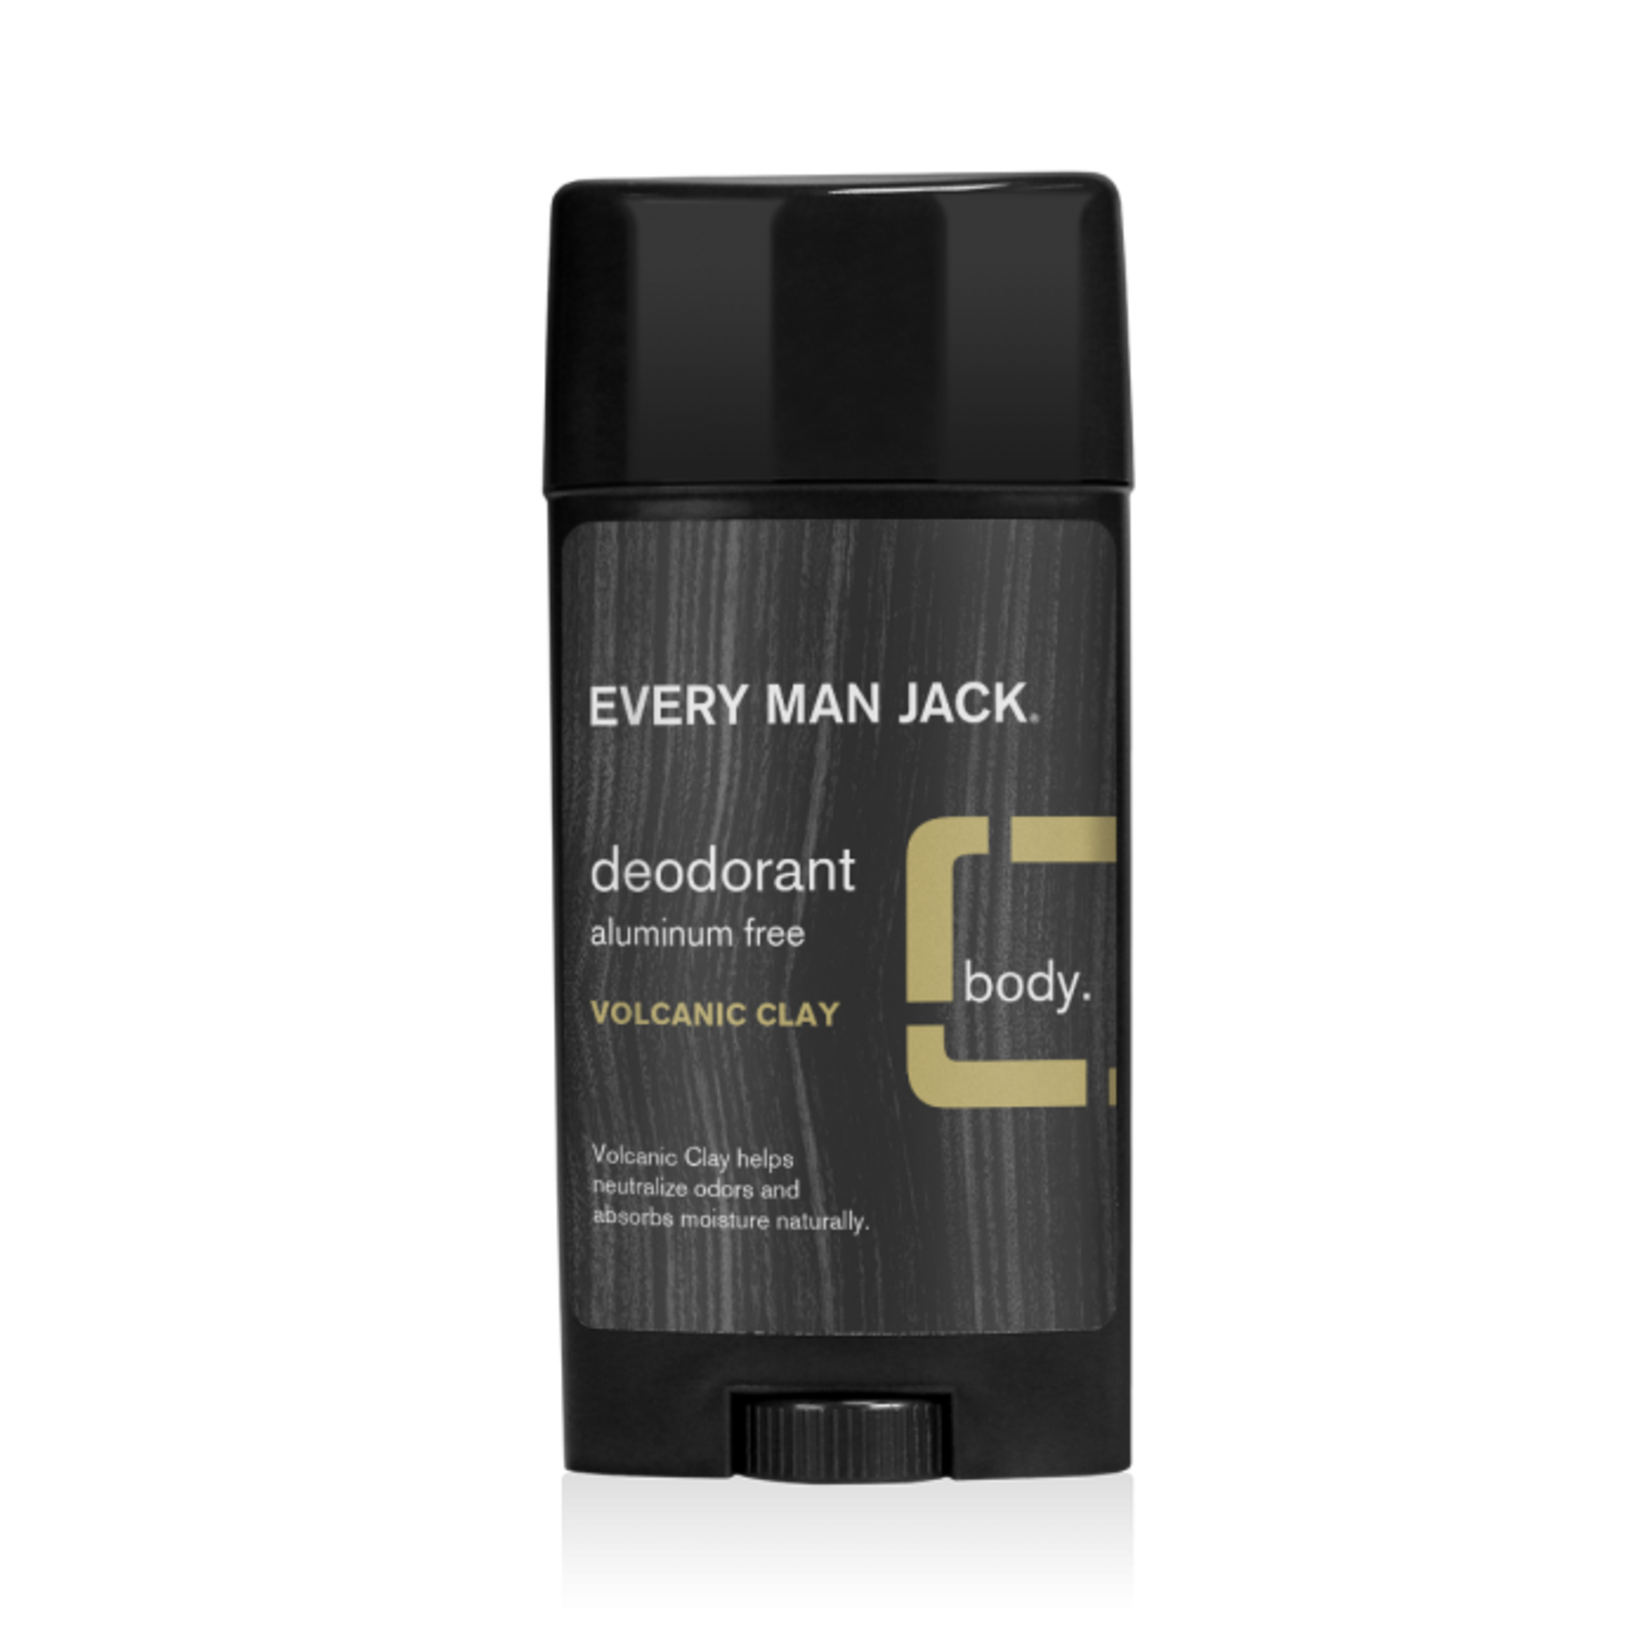 Every Man Jack Natural Deodorant- Volcanic Clay 76.5g